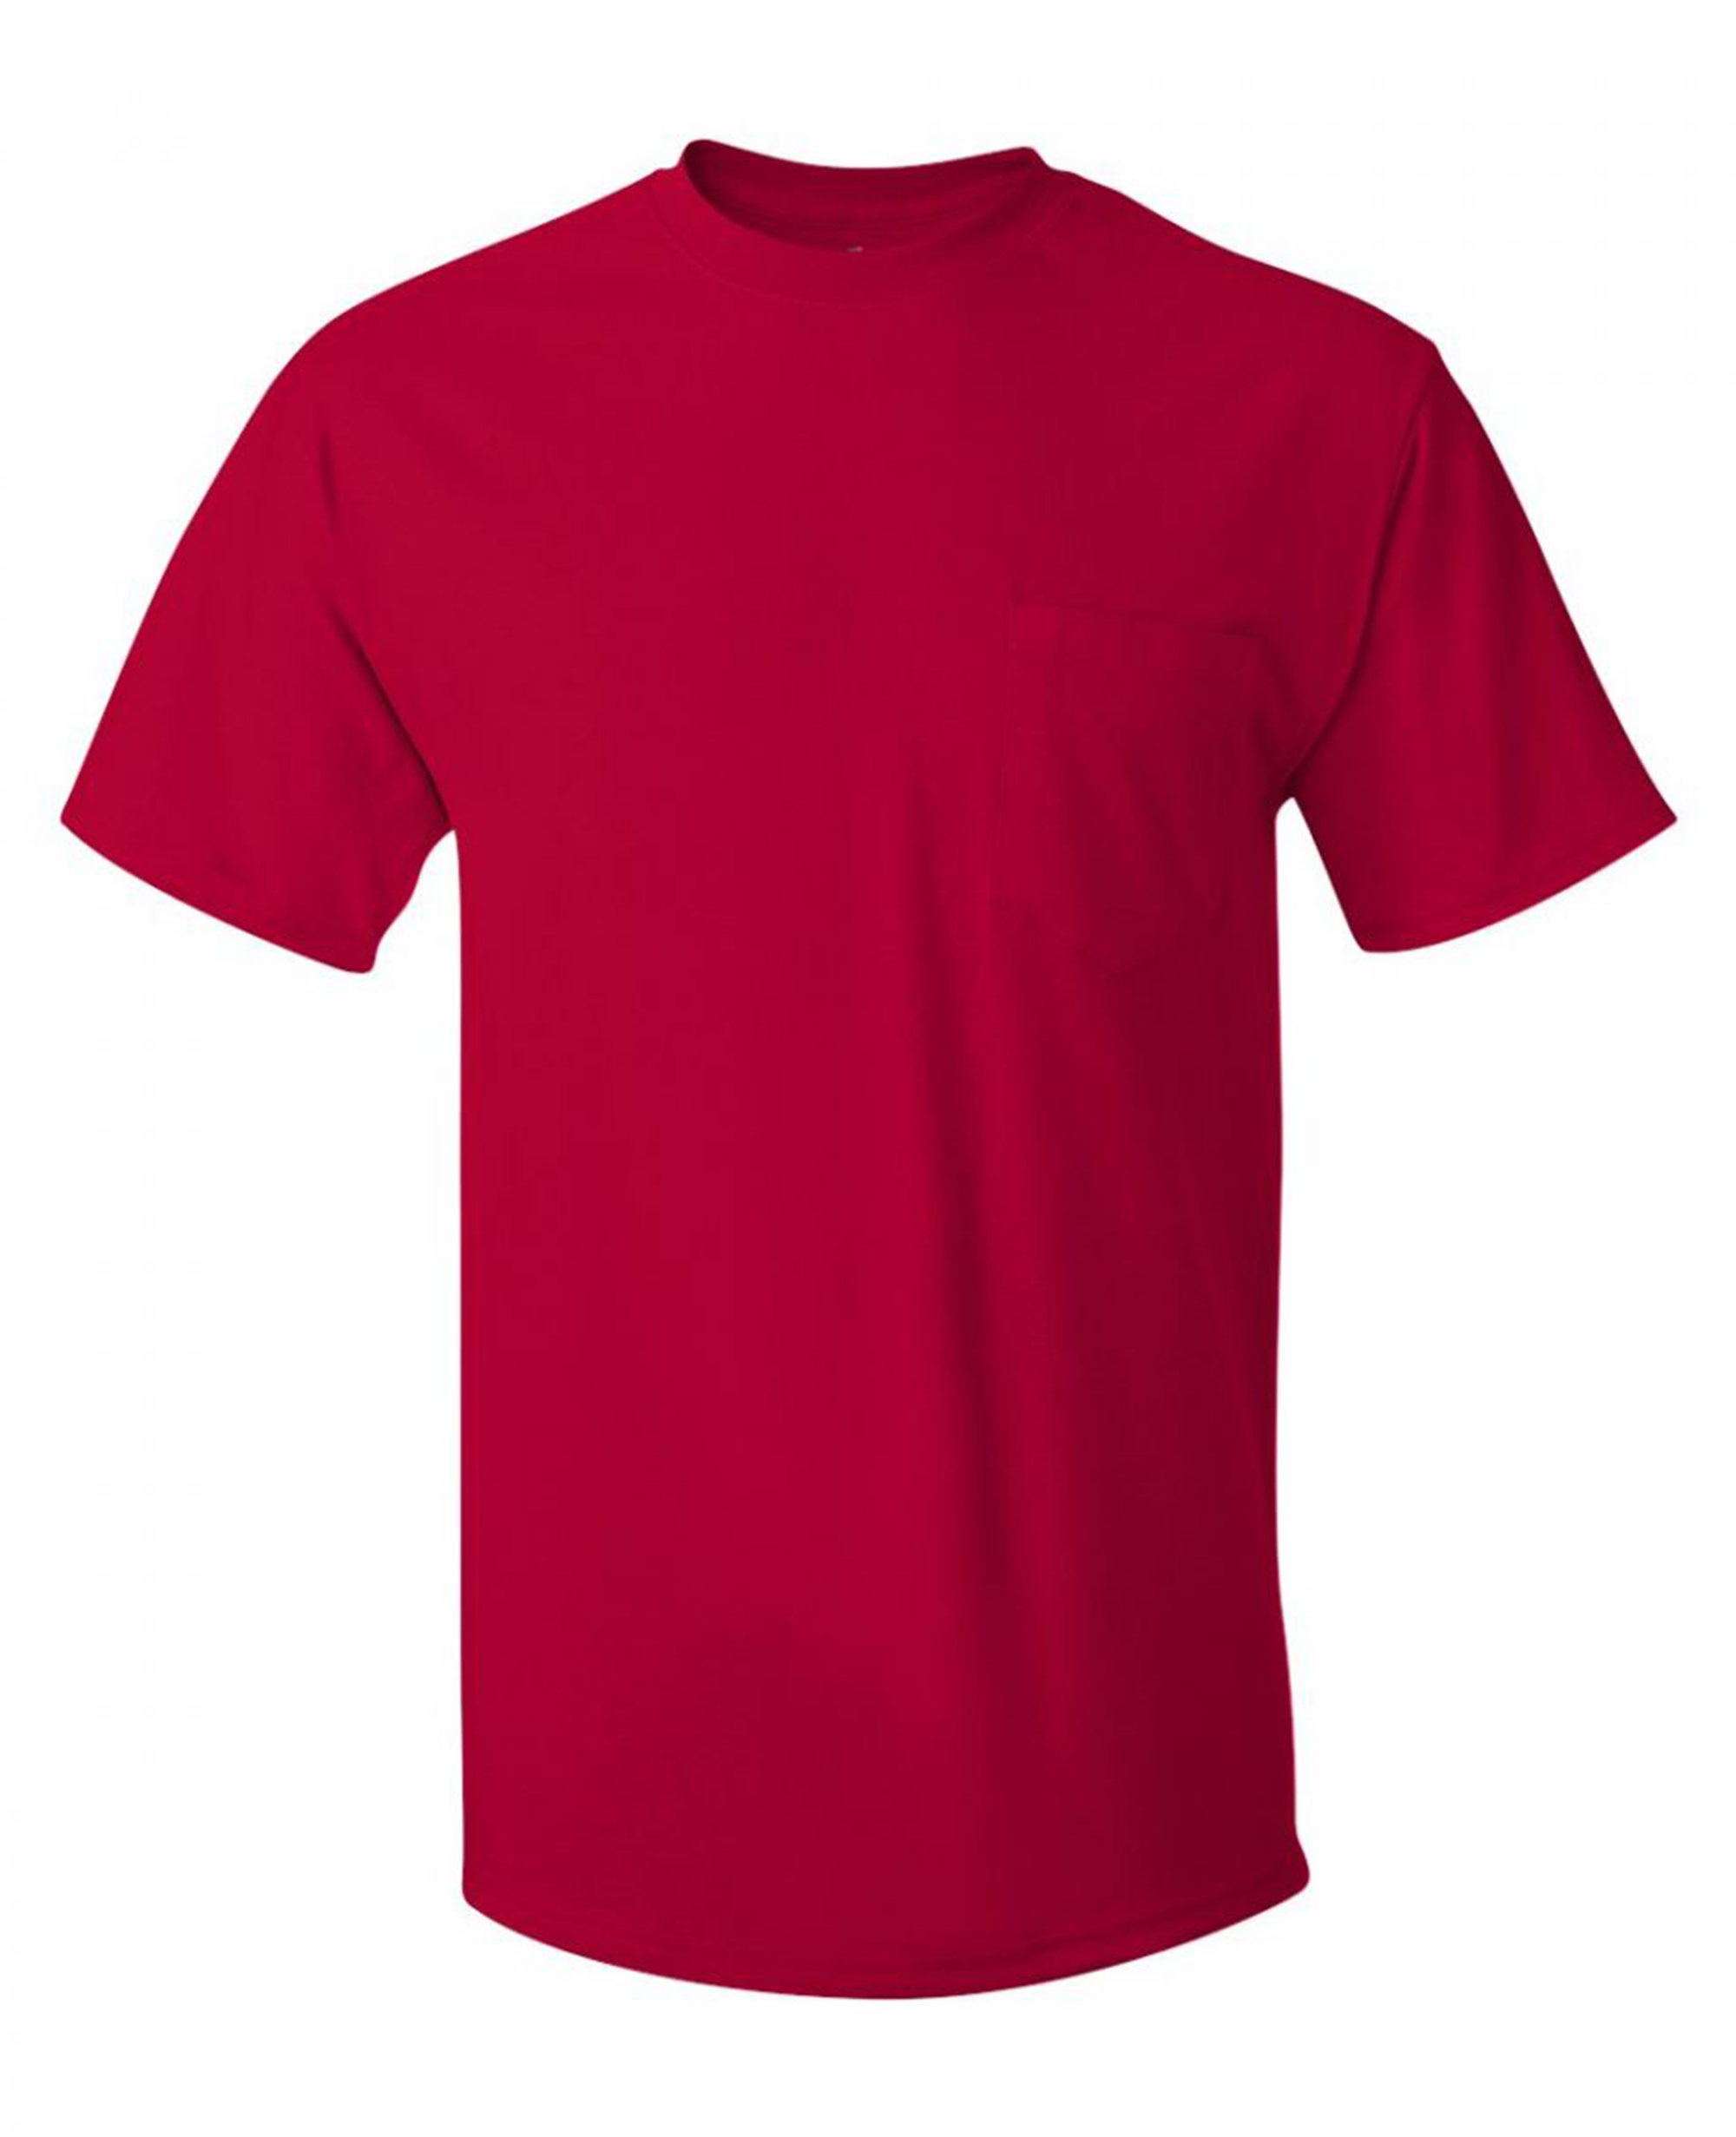 2 pack Heavyweight Pocket T-shirt - T-Shirts - Hanes - BRANMA